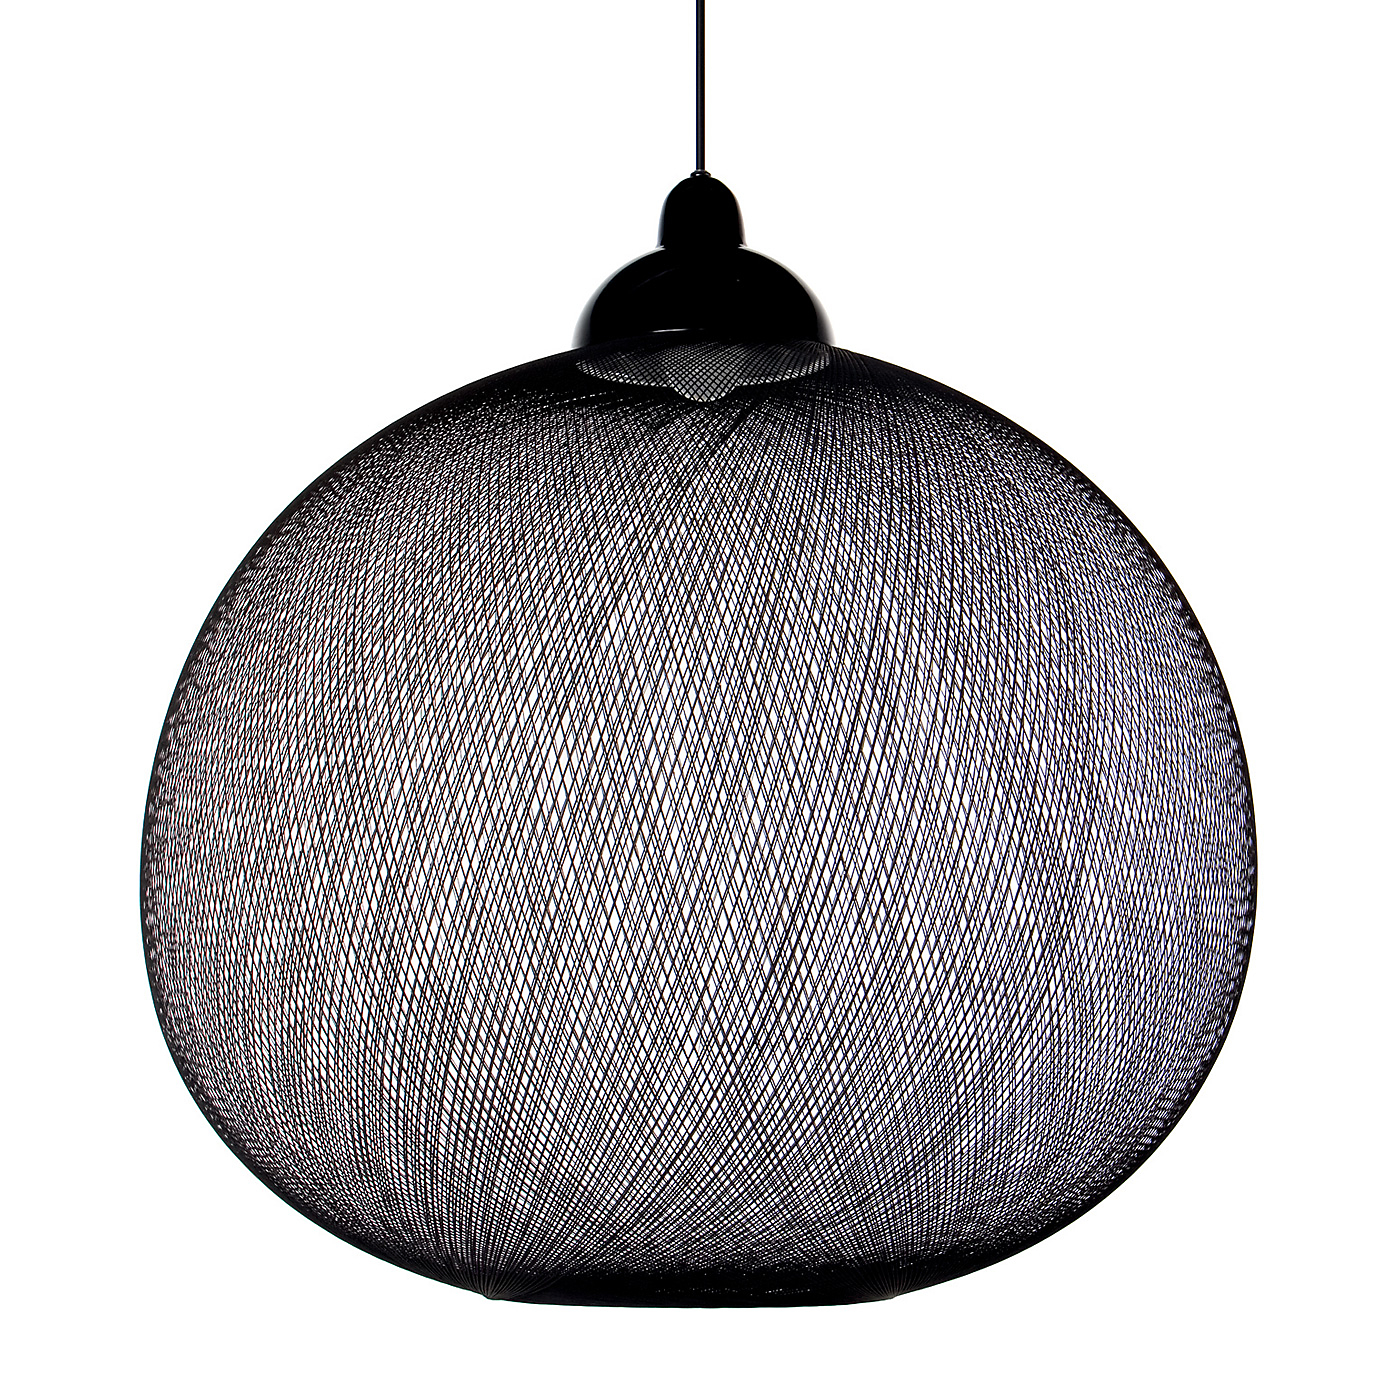 moooi non random light pendant lights lamps lights. Black Bedroom Furniture Sets. Home Design Ideas